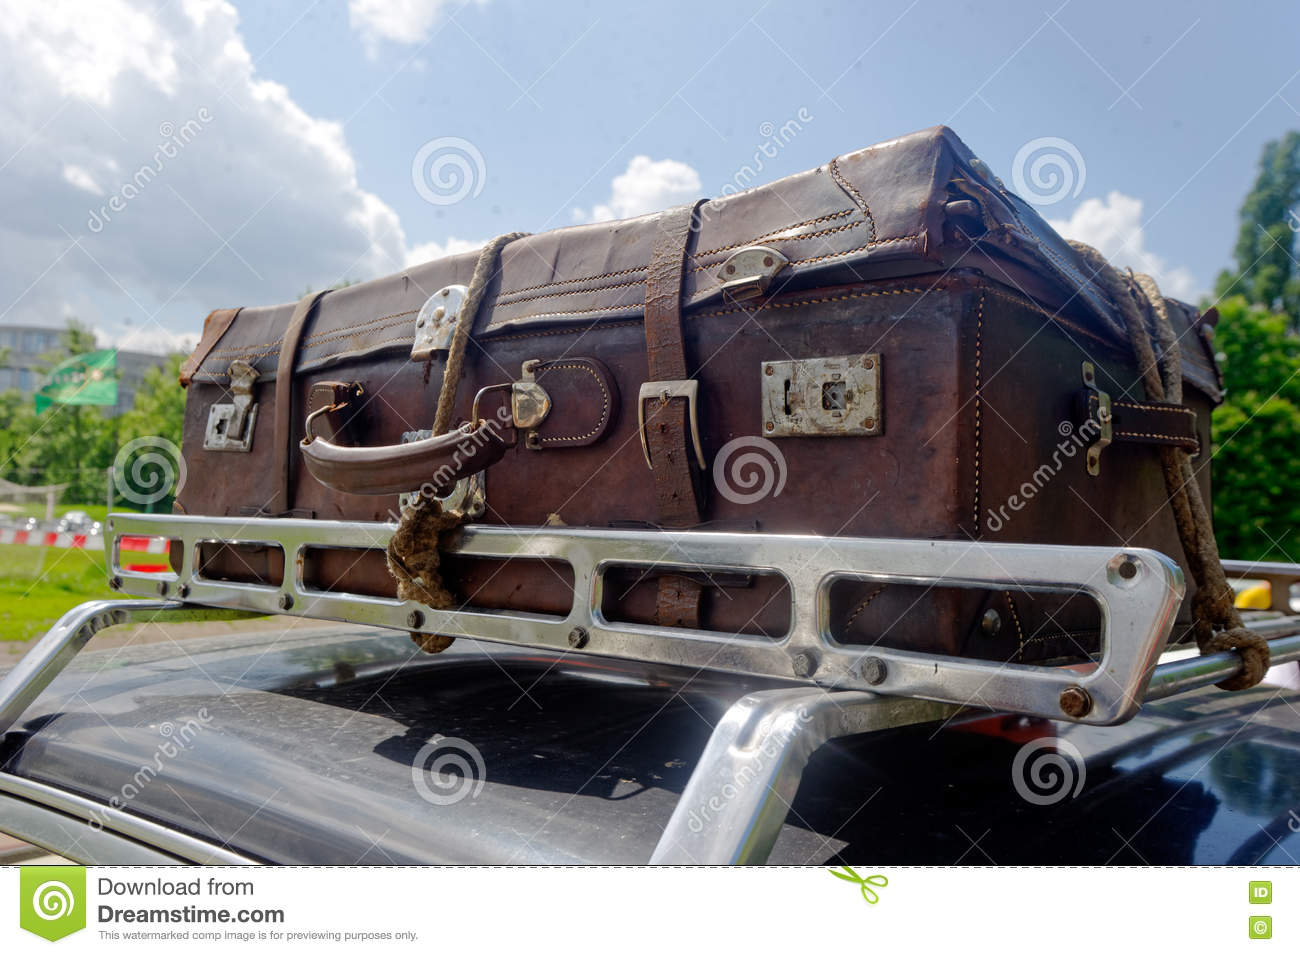 old suitcase on the car roof rack stock photo image 77472962. Black Bedroom Furniture Sets. Home Design Ideas